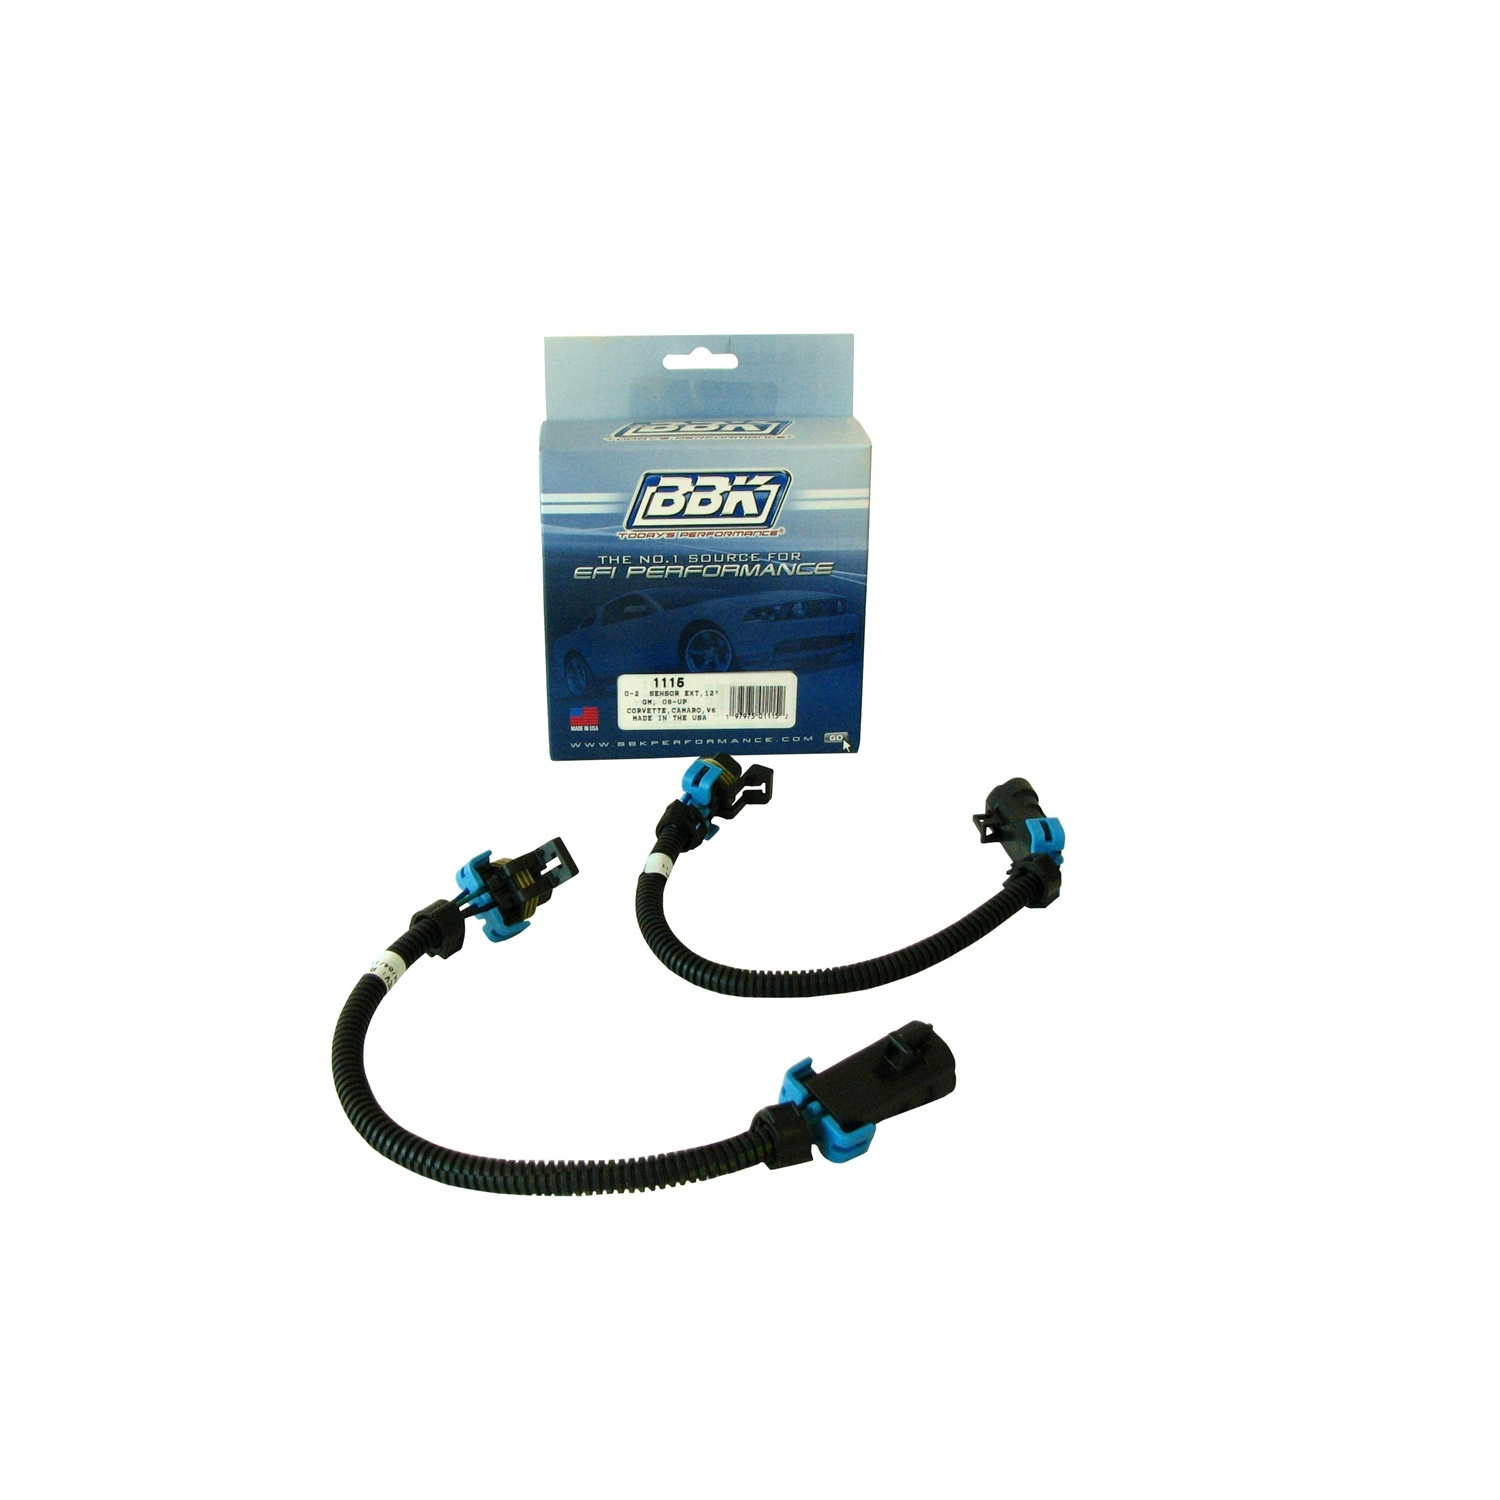 BBK Performance Parts 1115 O2 Sensor Wire Extension Harness